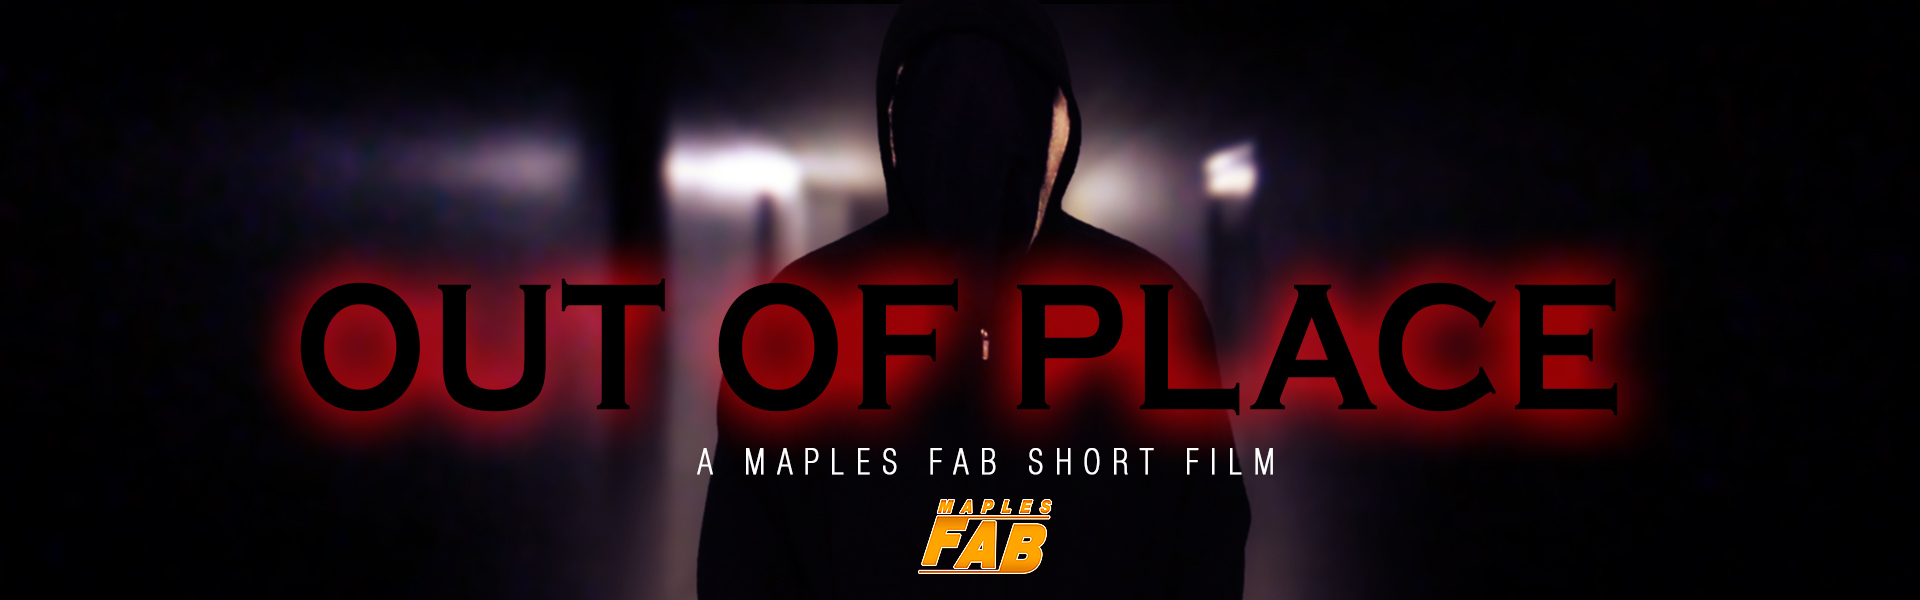 Out of Place - Maples FAB Short Film